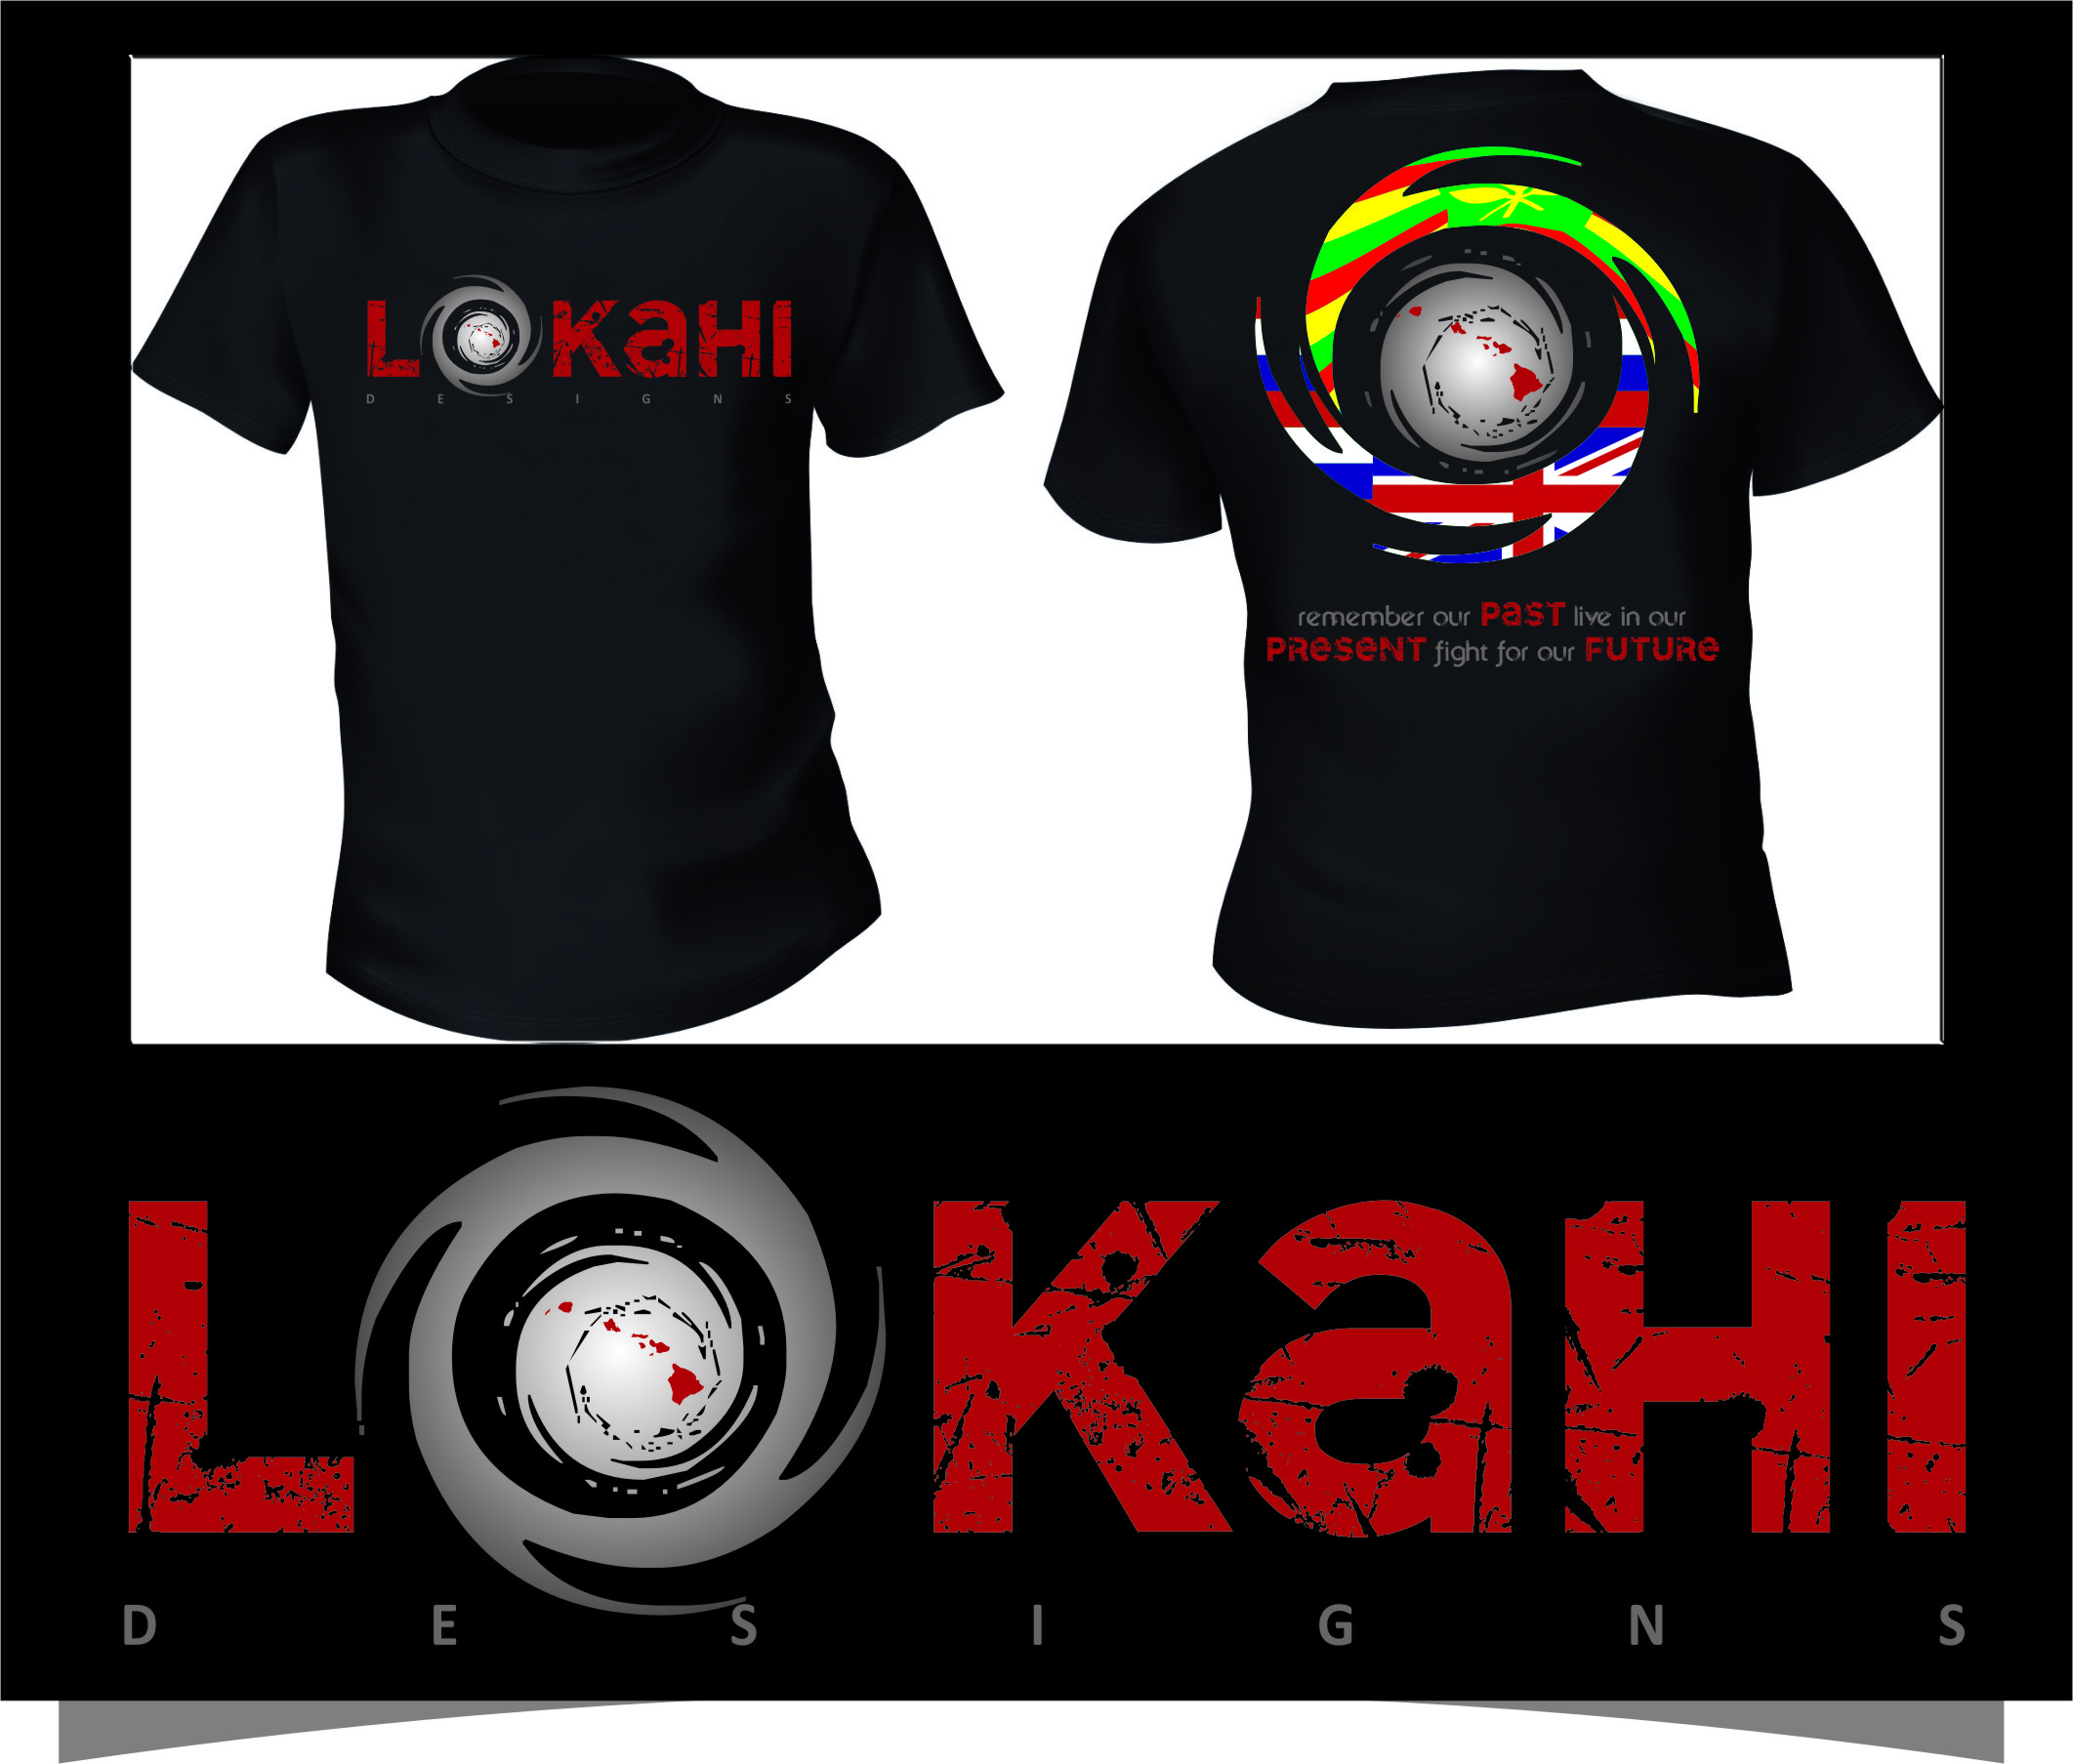 Clothing Design by Ngepet_art - Entry No. 44 in the Clothing Design Contest Creative Clothing Design for LOKAHI designs.